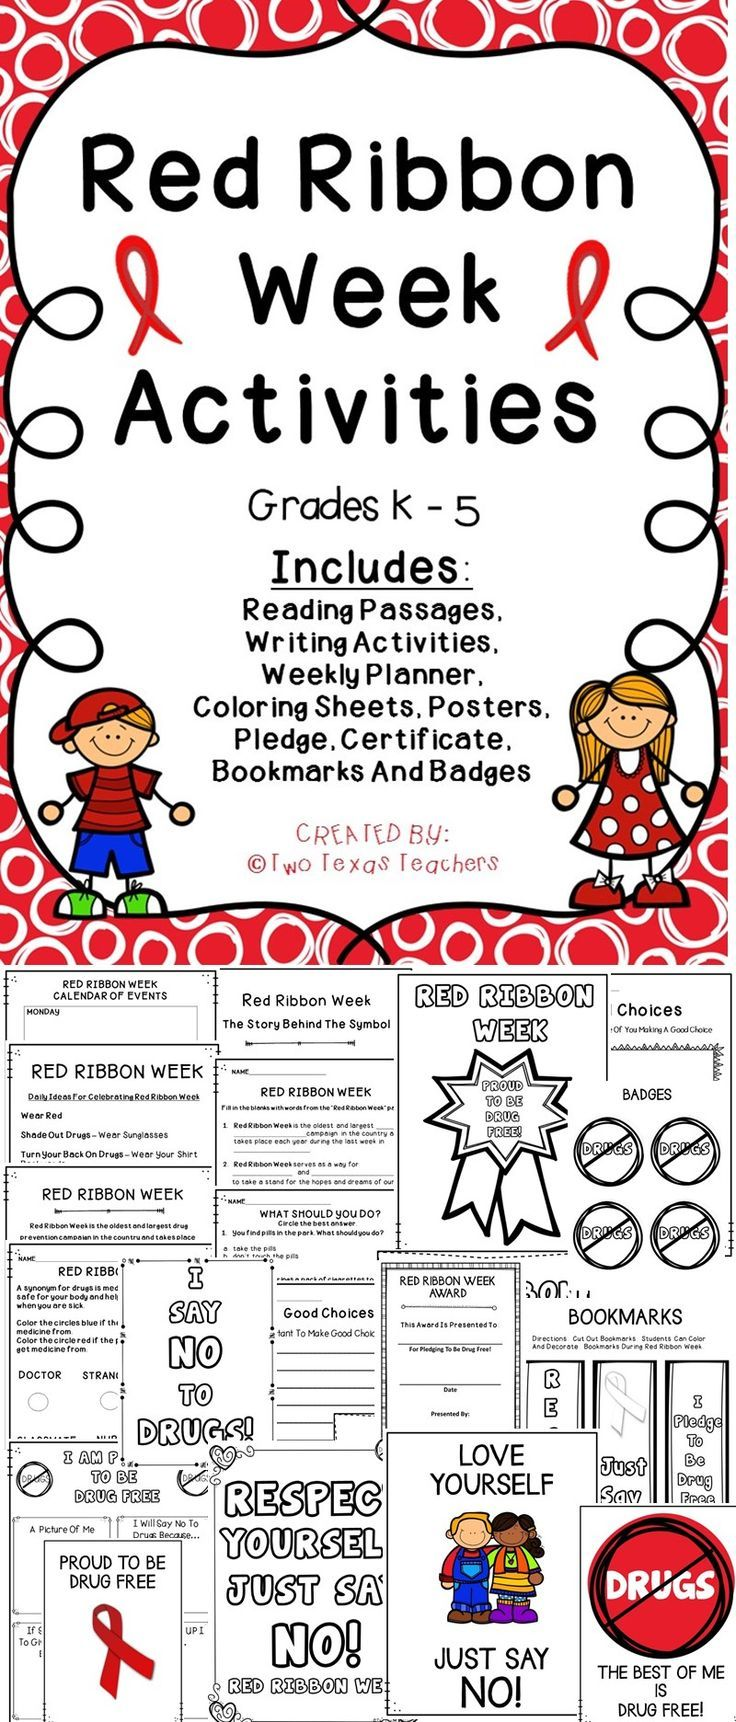 Red Ribbon Week  Celebrate Red Ribbon Week with this fun filled activity pack. This Red Ribbon activity pack will help students learn about the importance of being drug free and making good choices.